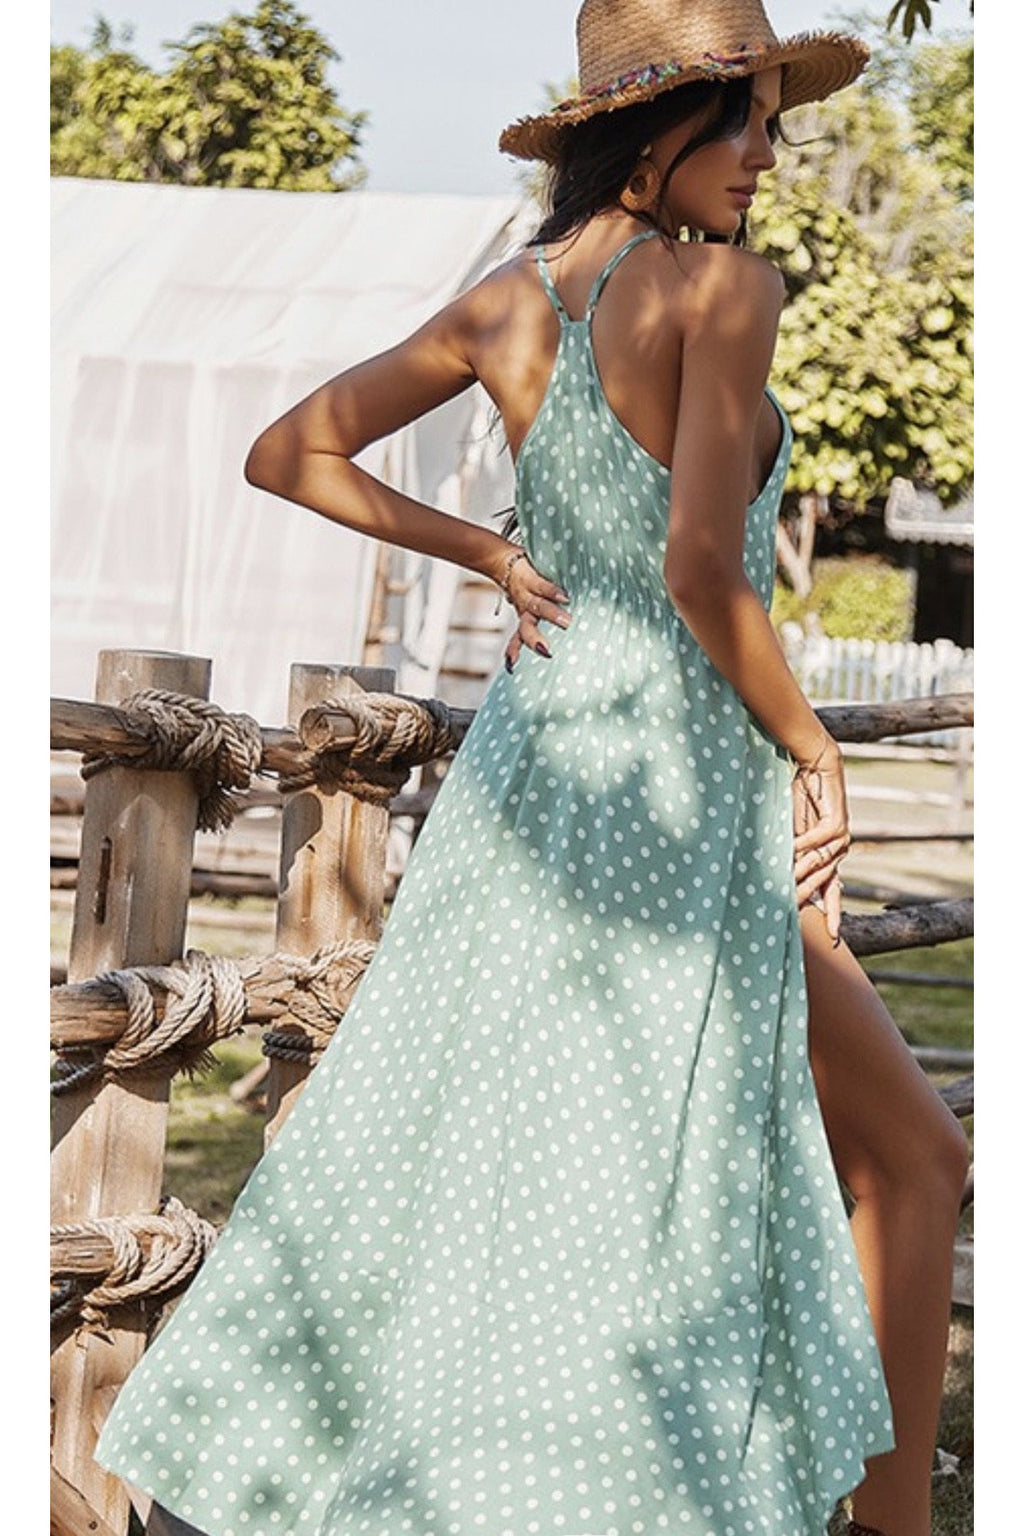 Monica Polka Dot Maxi Dress $48